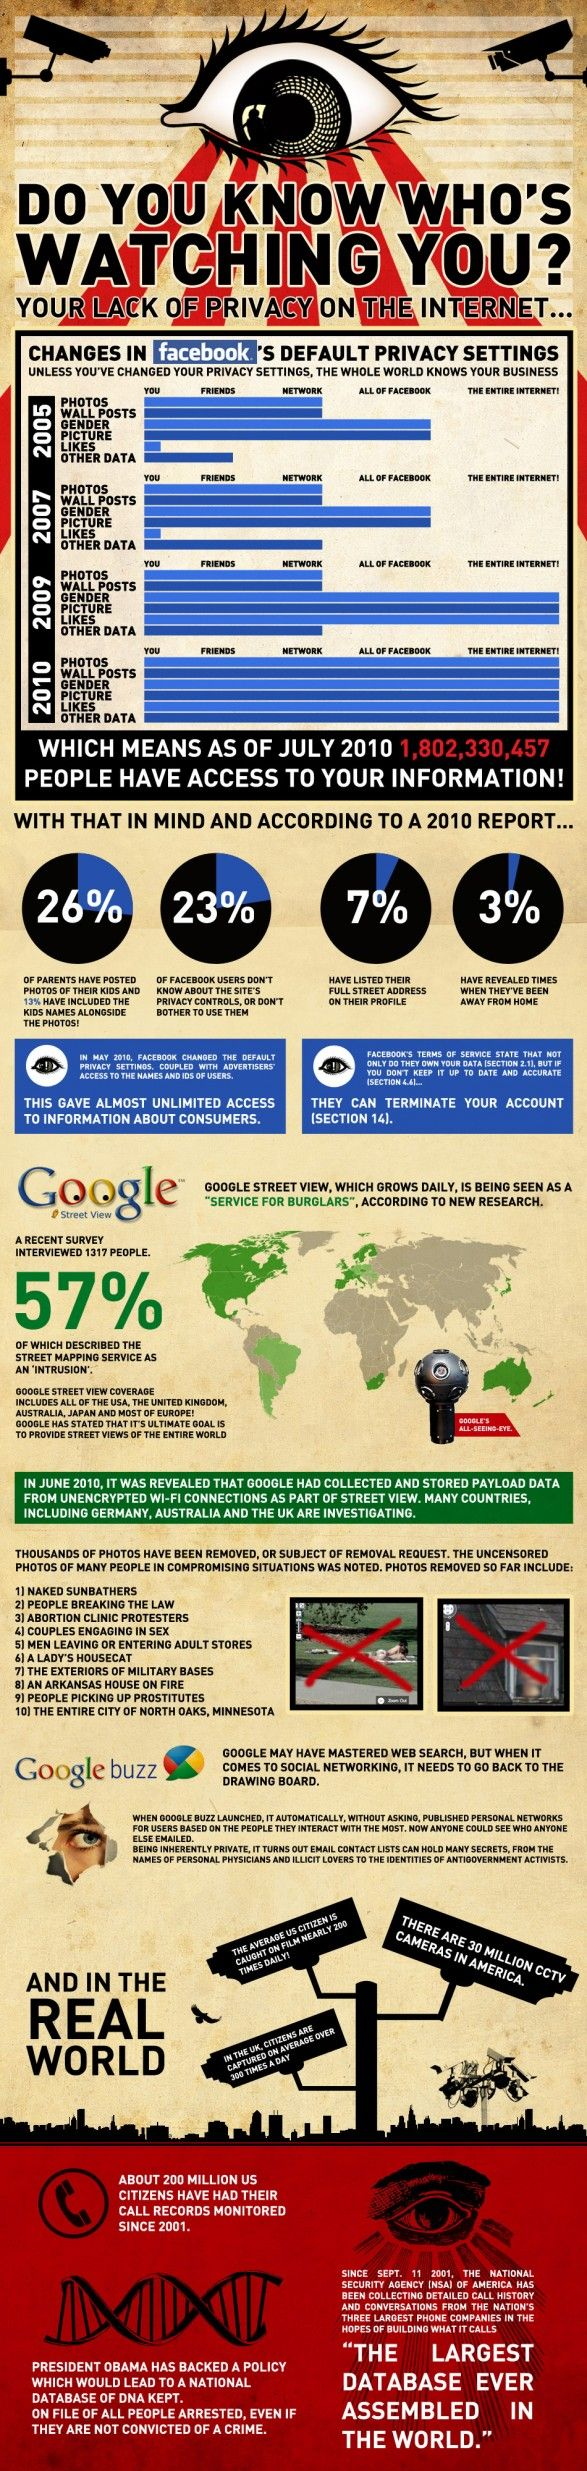 Do You Know Who's Watching You?Social Network, Website, Web Site, Social Media, Internet Privacy, Big Brother, Internet Site, Infographic, Socialmedia